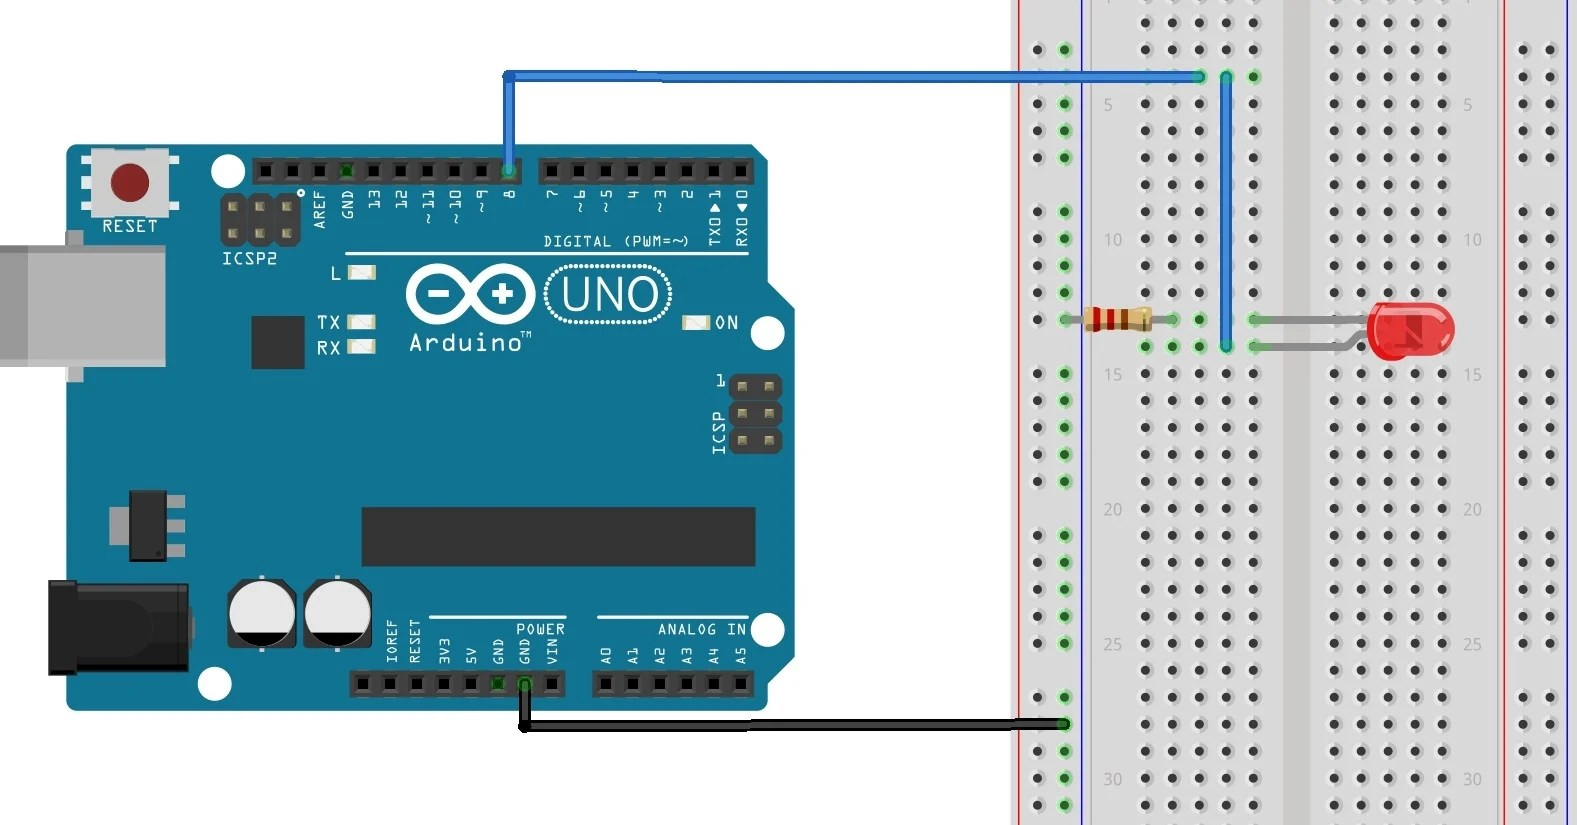 wiring diagram for led lights where are my kidneys located how to use the arduino s digital i o figure above shows connect and 220 ohm resistor as shown connects pin 8 of